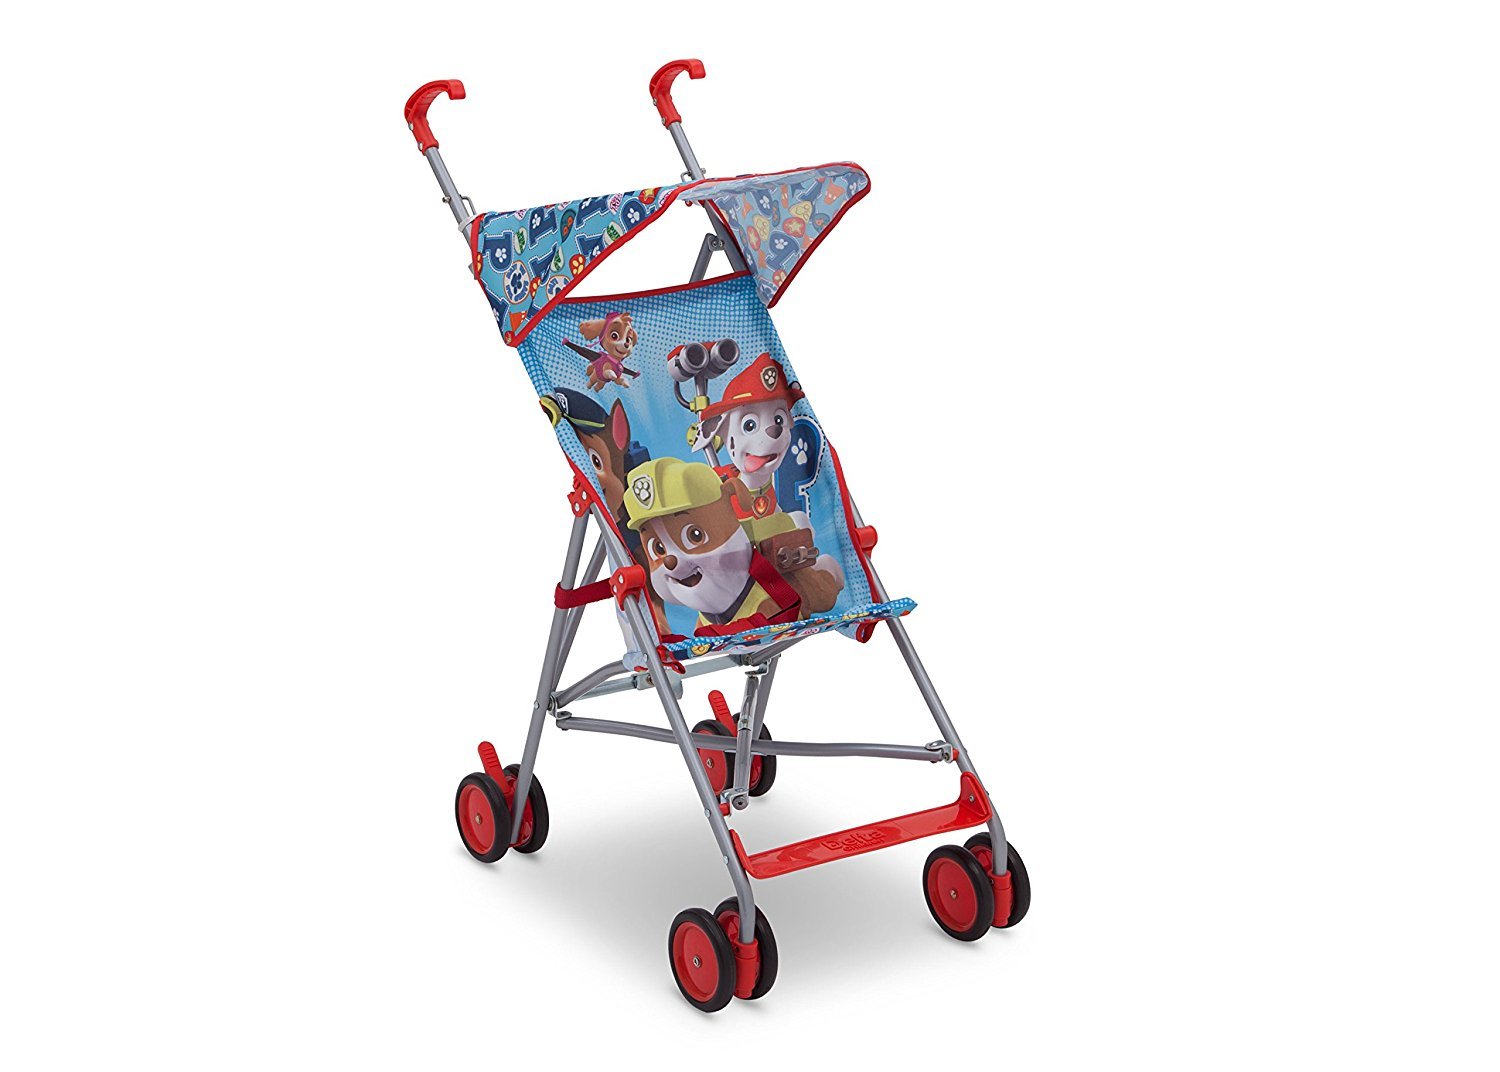 Umbrella Stroller, Nick Jr. PAW Patrol, Holds up to 30 lbs. Fun character print By Delta Children Ship from US by Delta Children